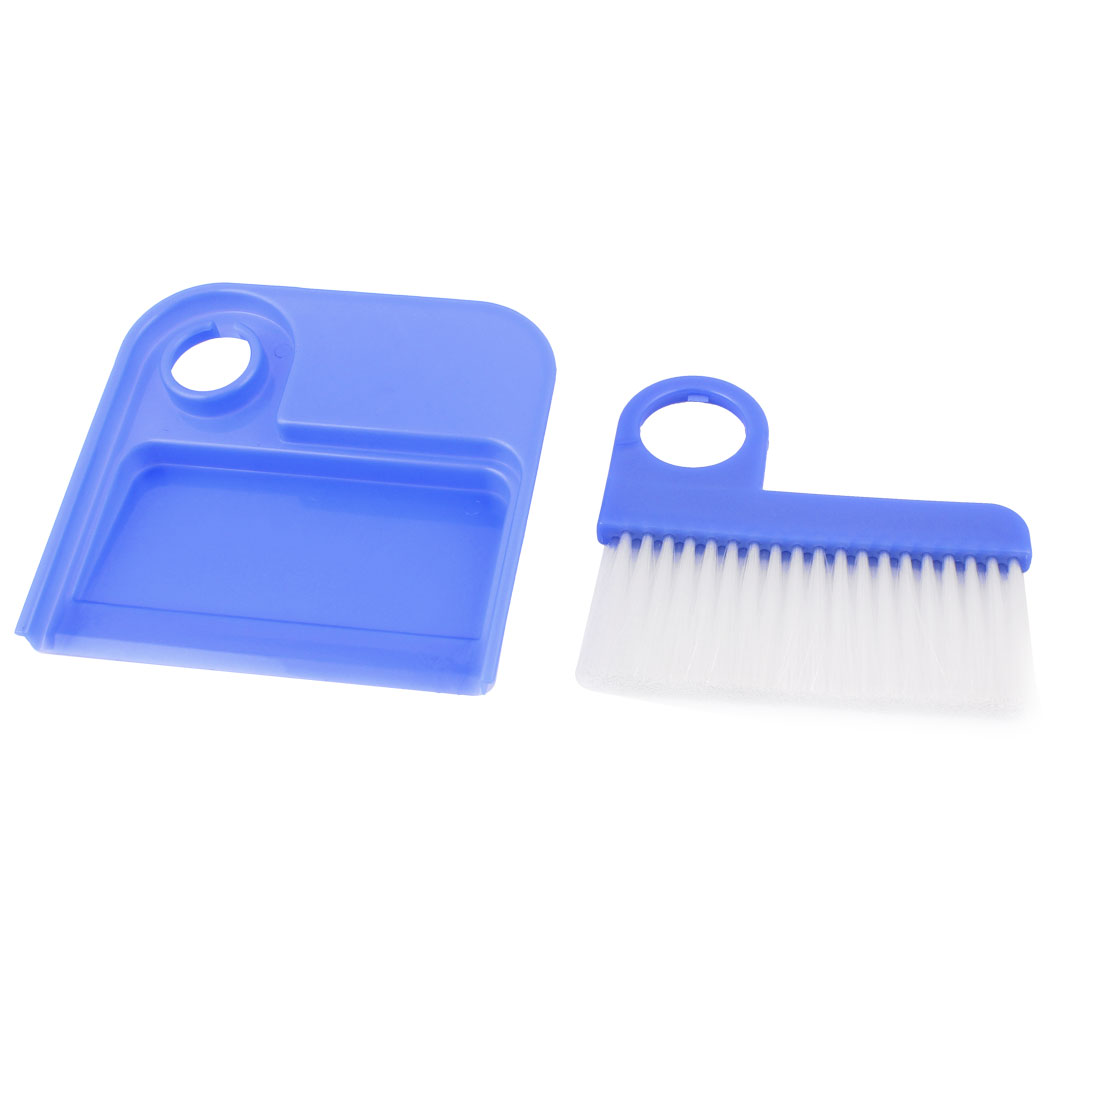 Mini Indoor Household Keyboard Desktop Desk Cleaning Dustpan w Brush Broom Set Blue